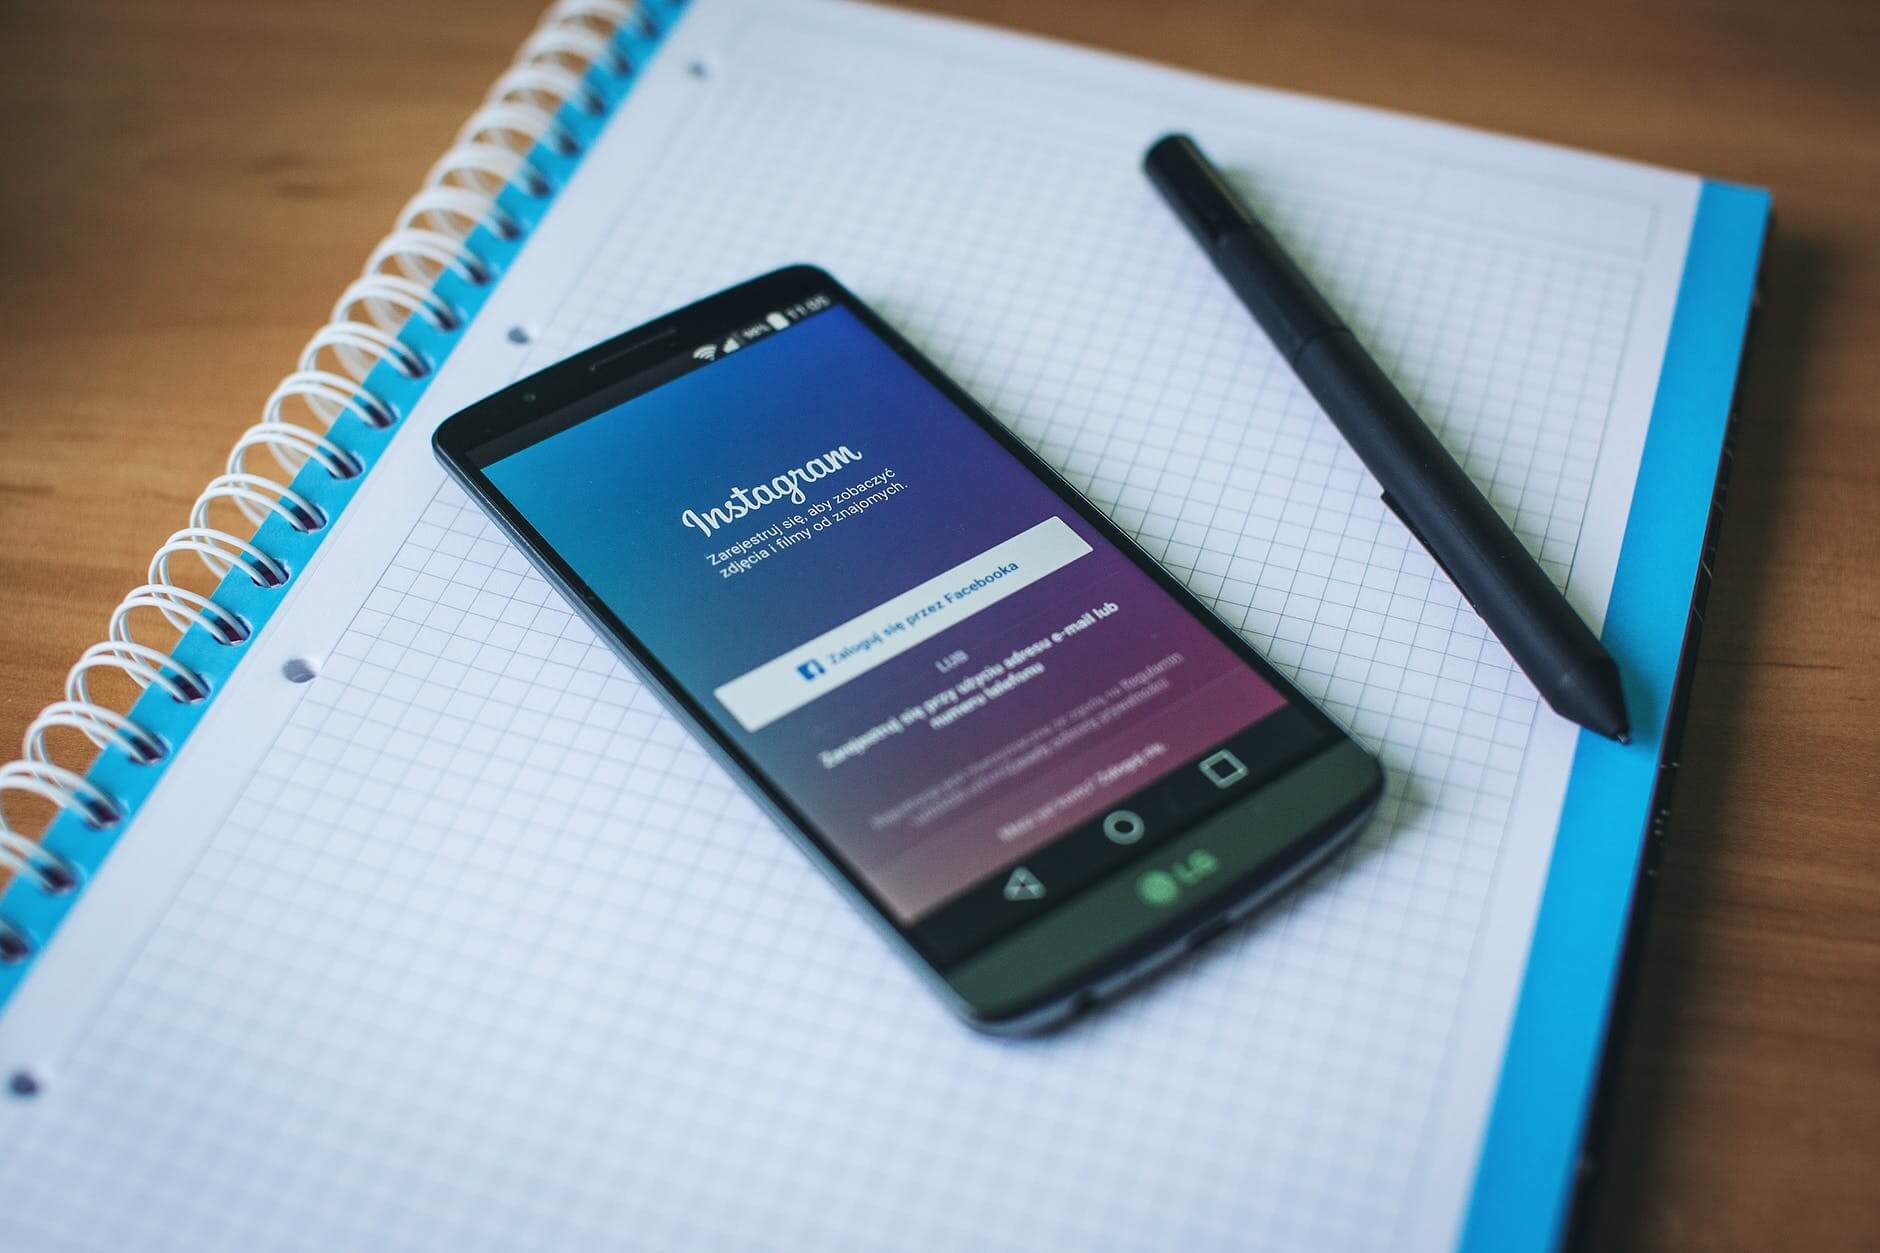 Facebook-is-Coming-with-E-Commerce-App-in-the-World-of-Technology